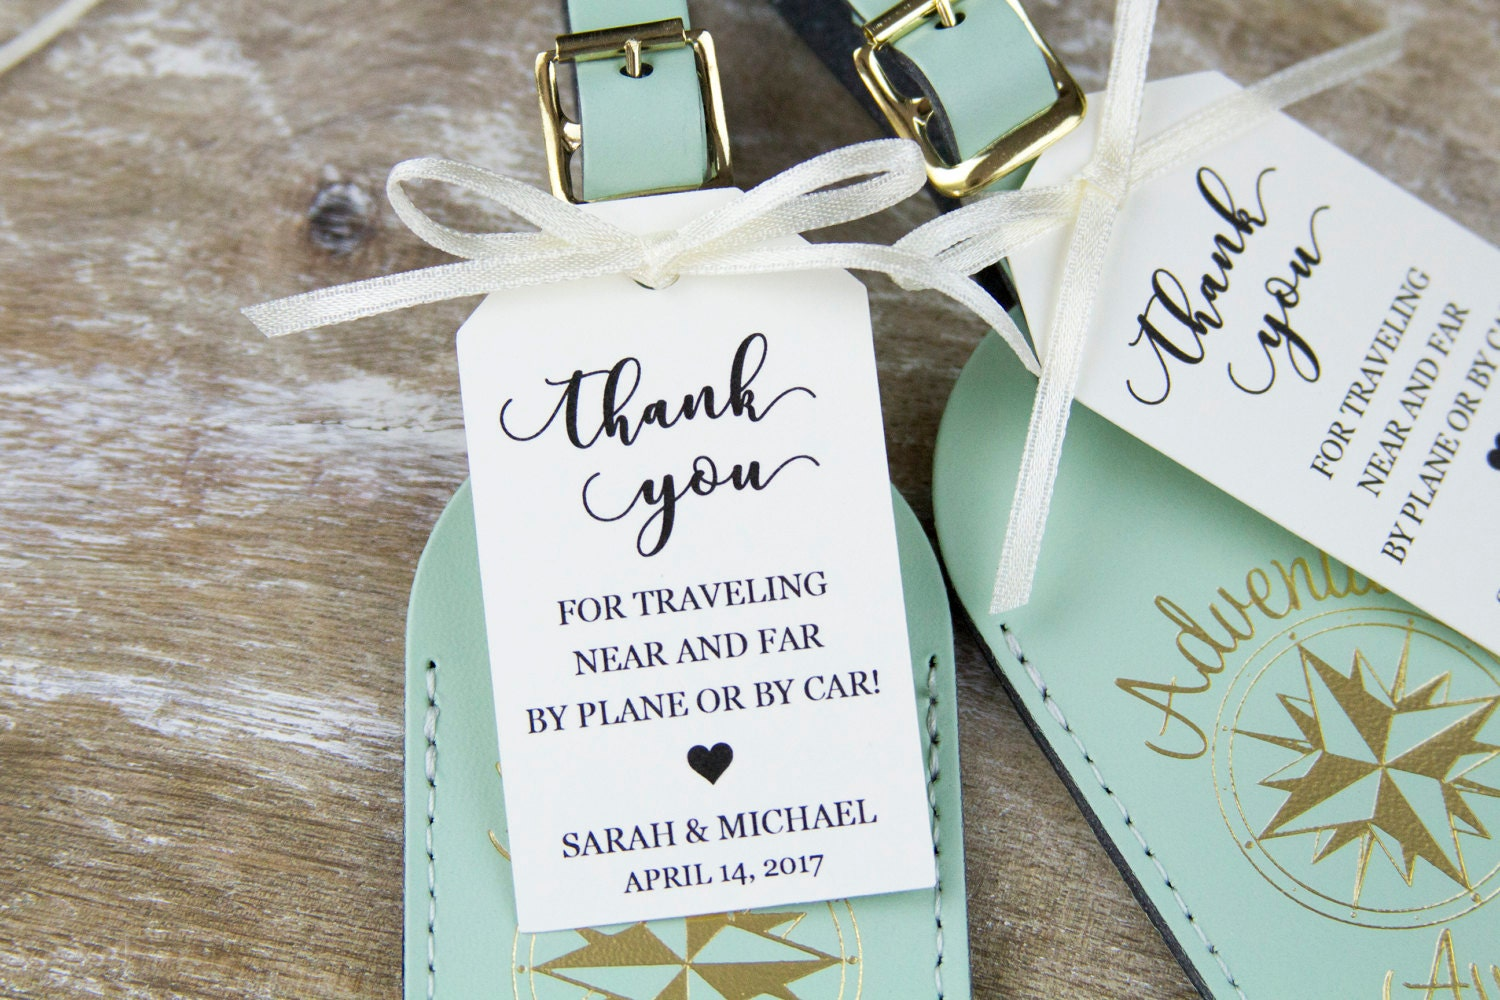 Wedding Party Gifts Uk: Thank You Tag Wedding Favor Tag Luggage Favor Tag